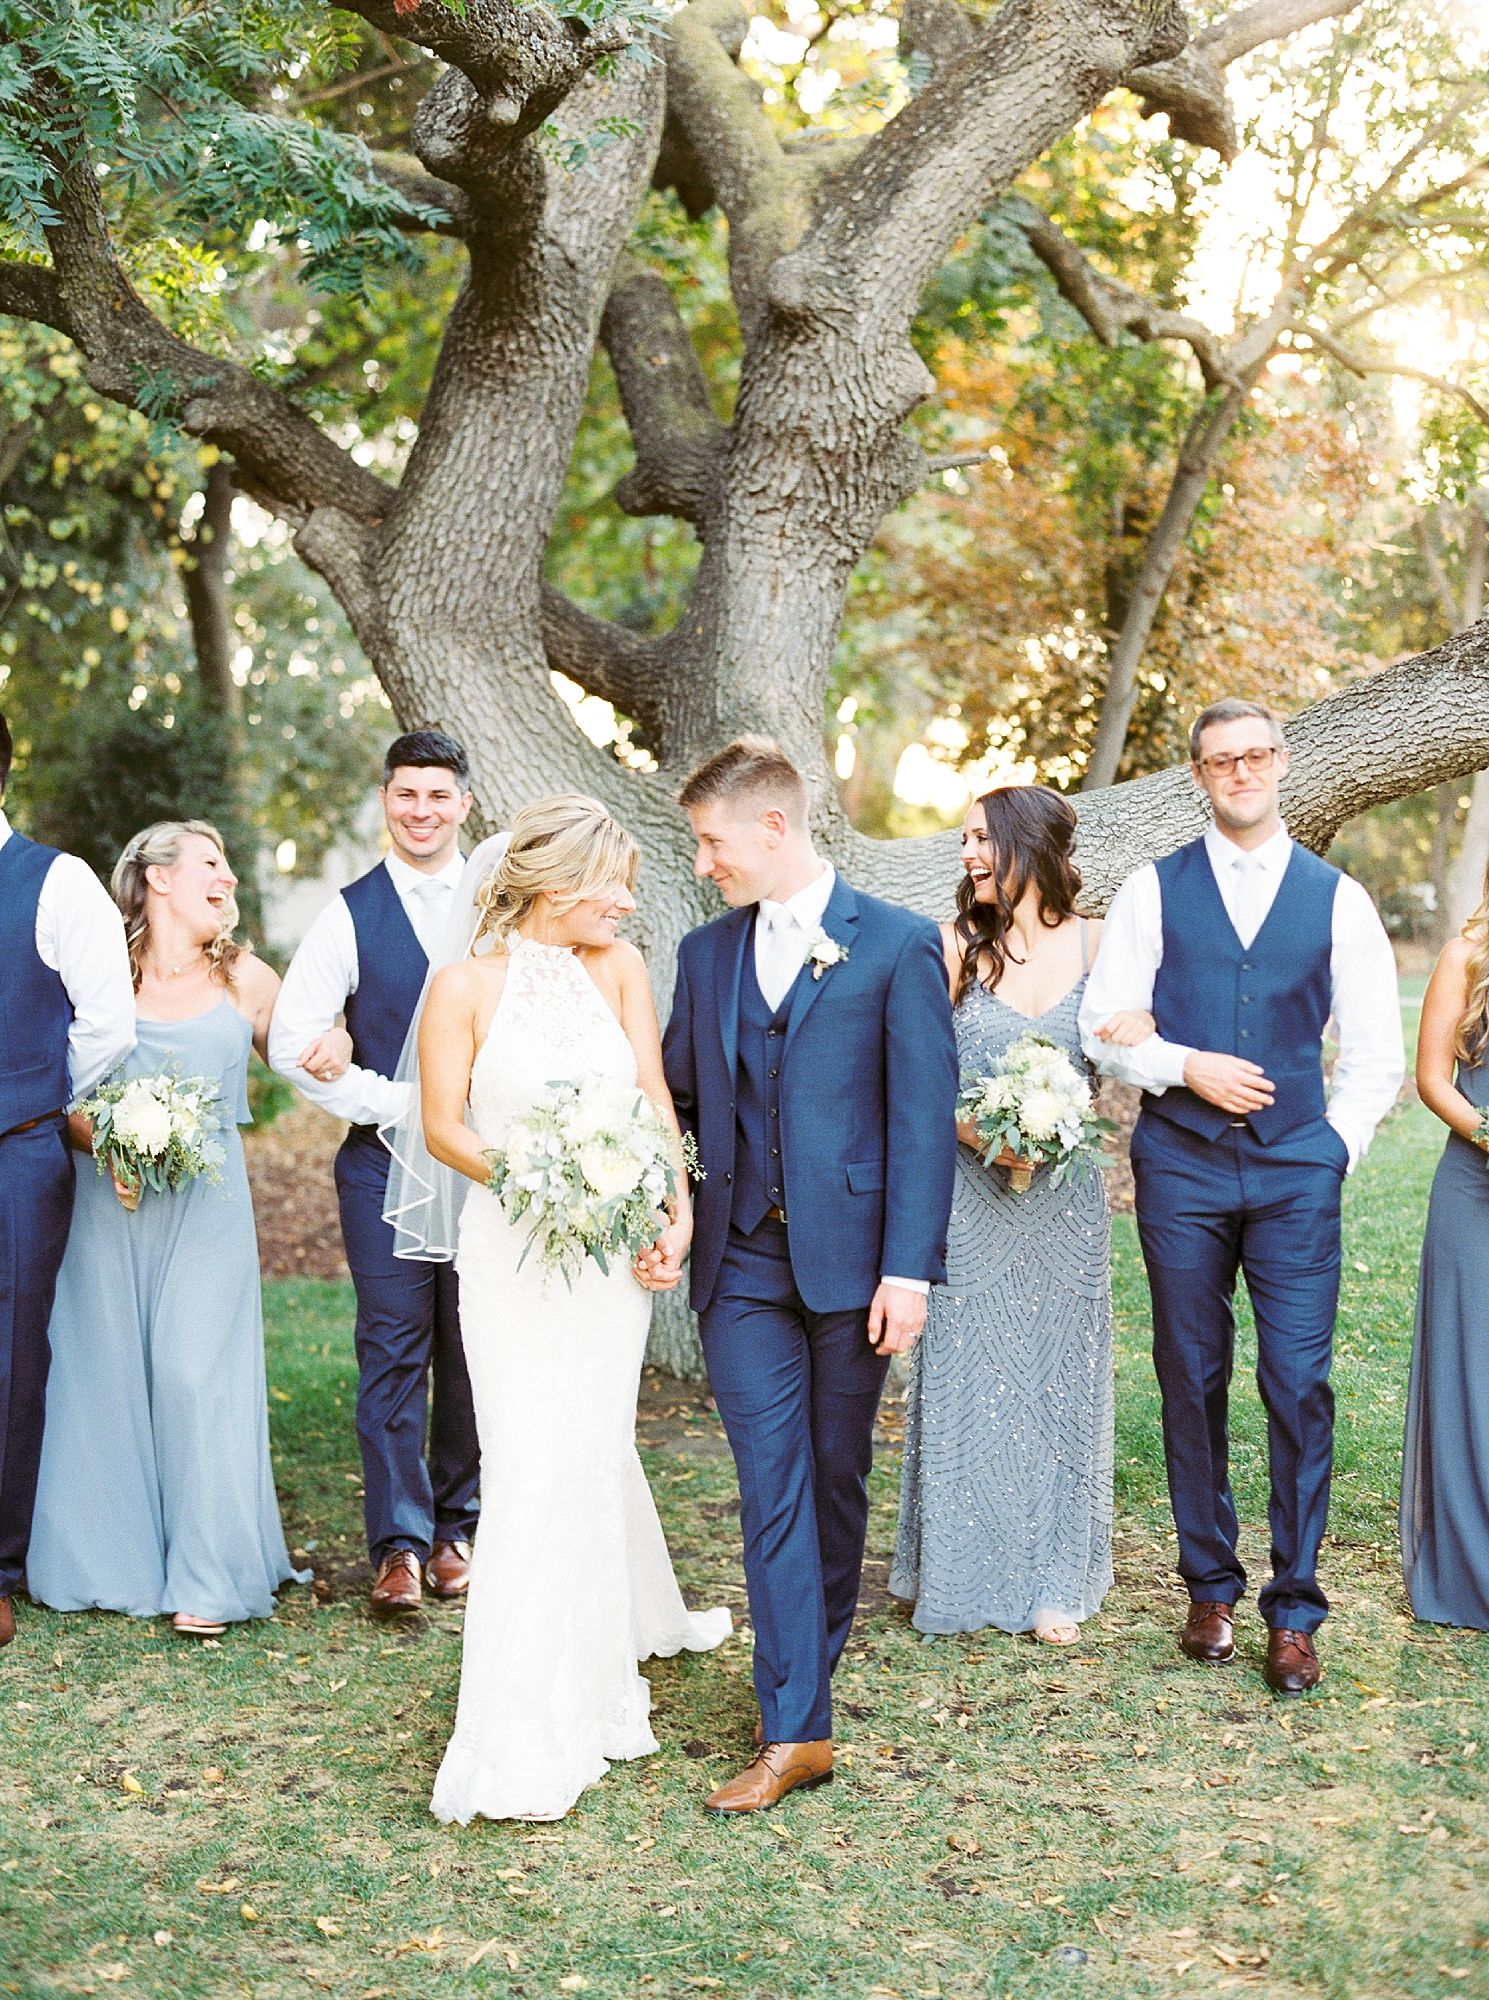 The Maples Wedding in Woodland California - Ashley Baumgartner - Sacramento Wedding Photographer - Sacramento Film Photographer_0022.jpg